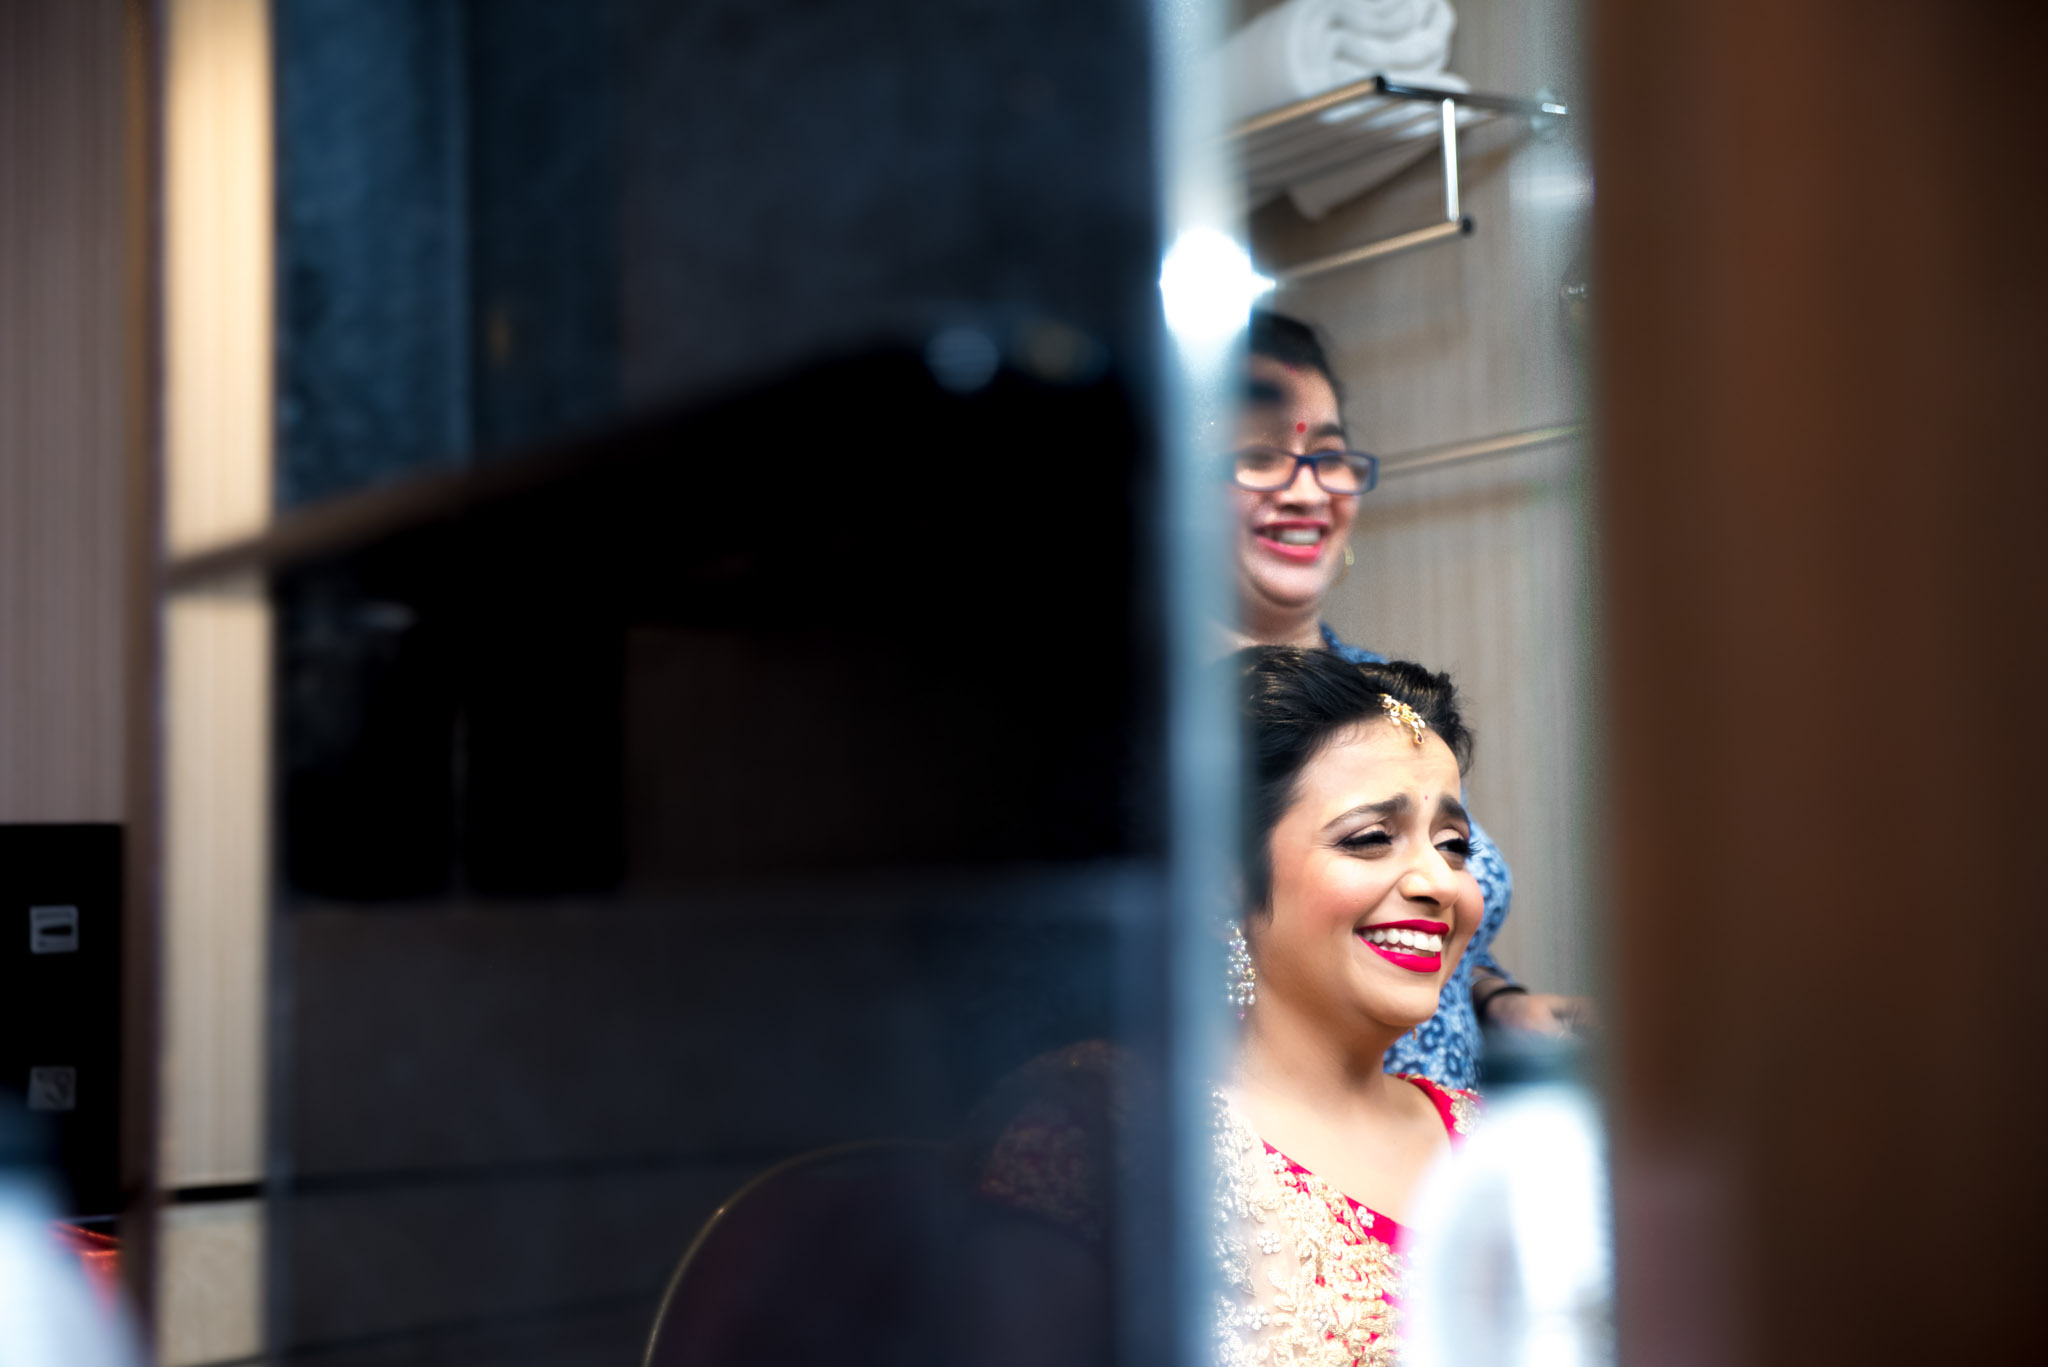 mumbai-candid-photography-wedding-whatknot-kamal-amrohi-studios-24